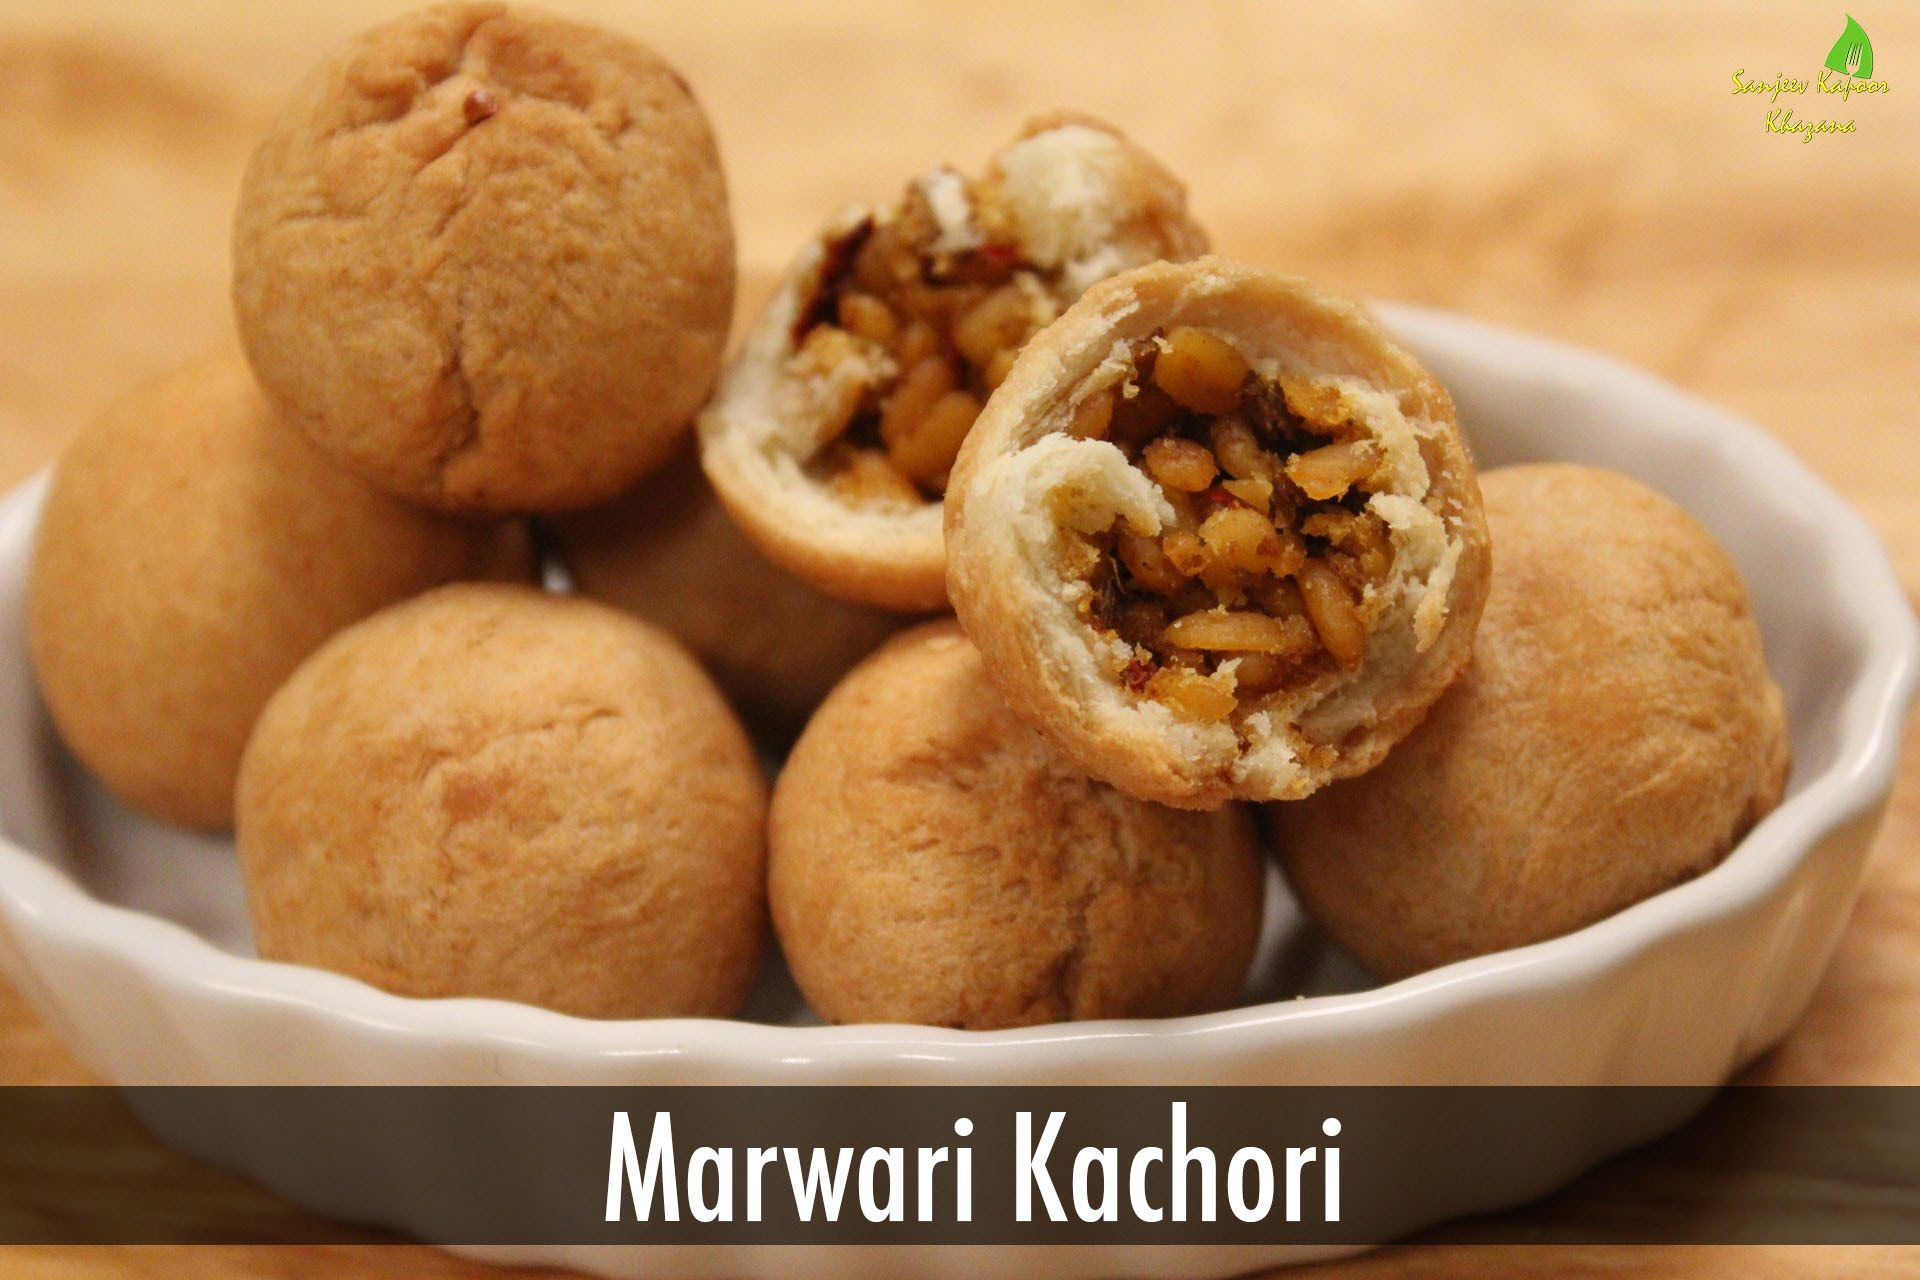 Marwari kachori indian snacks recipe sanjeev kapoor khazana marwari kachori indian snacks recipe sanjeev kapoor khazana forumfinder Choice Image